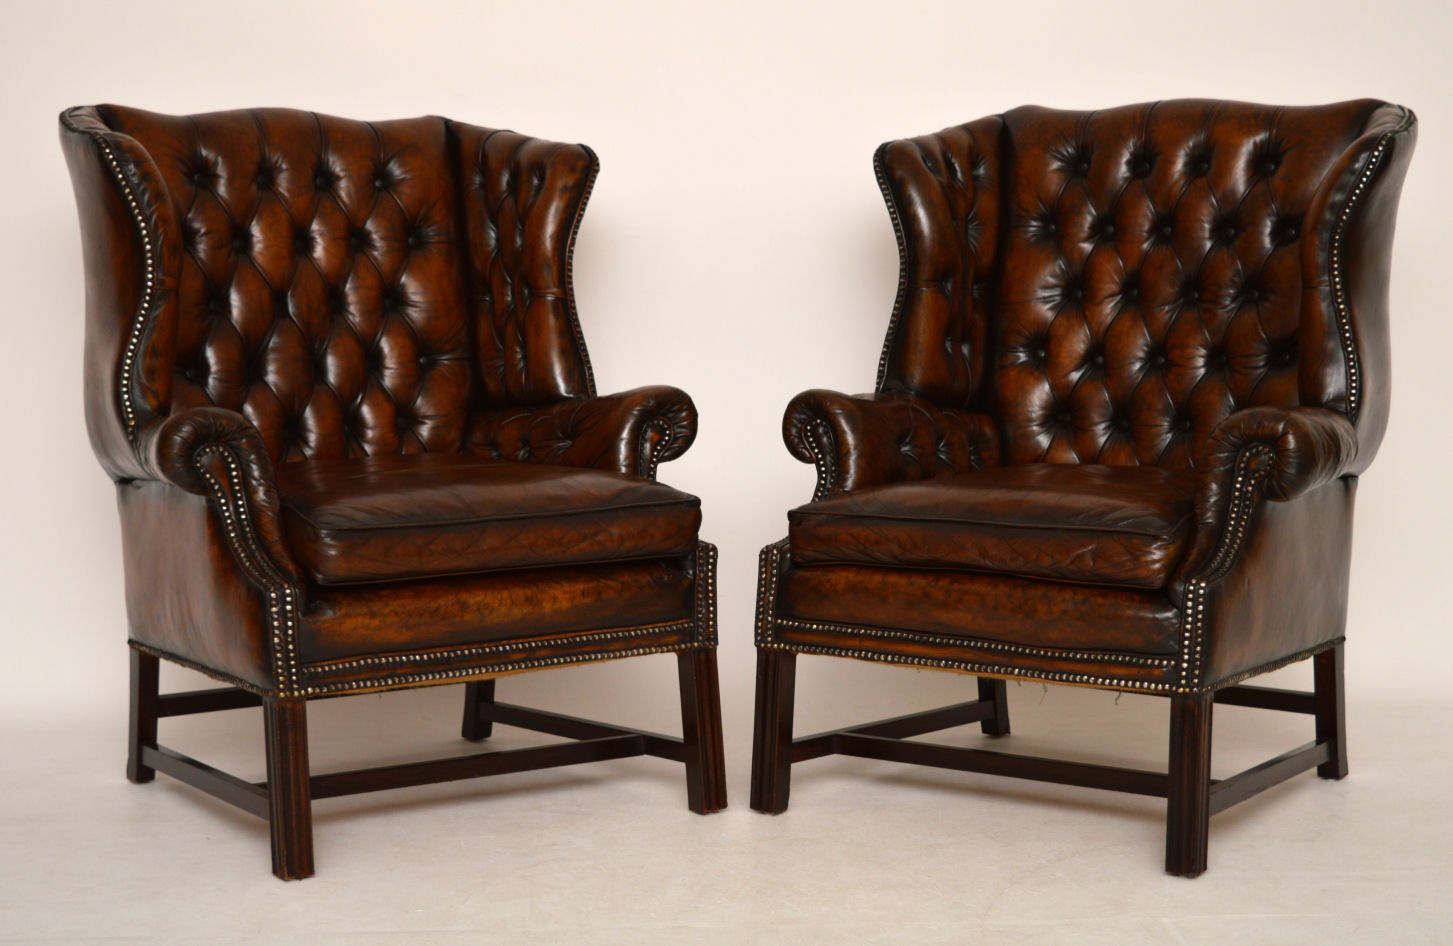 Pair of Antique Deep Buttoned Leather Wing Armchairs